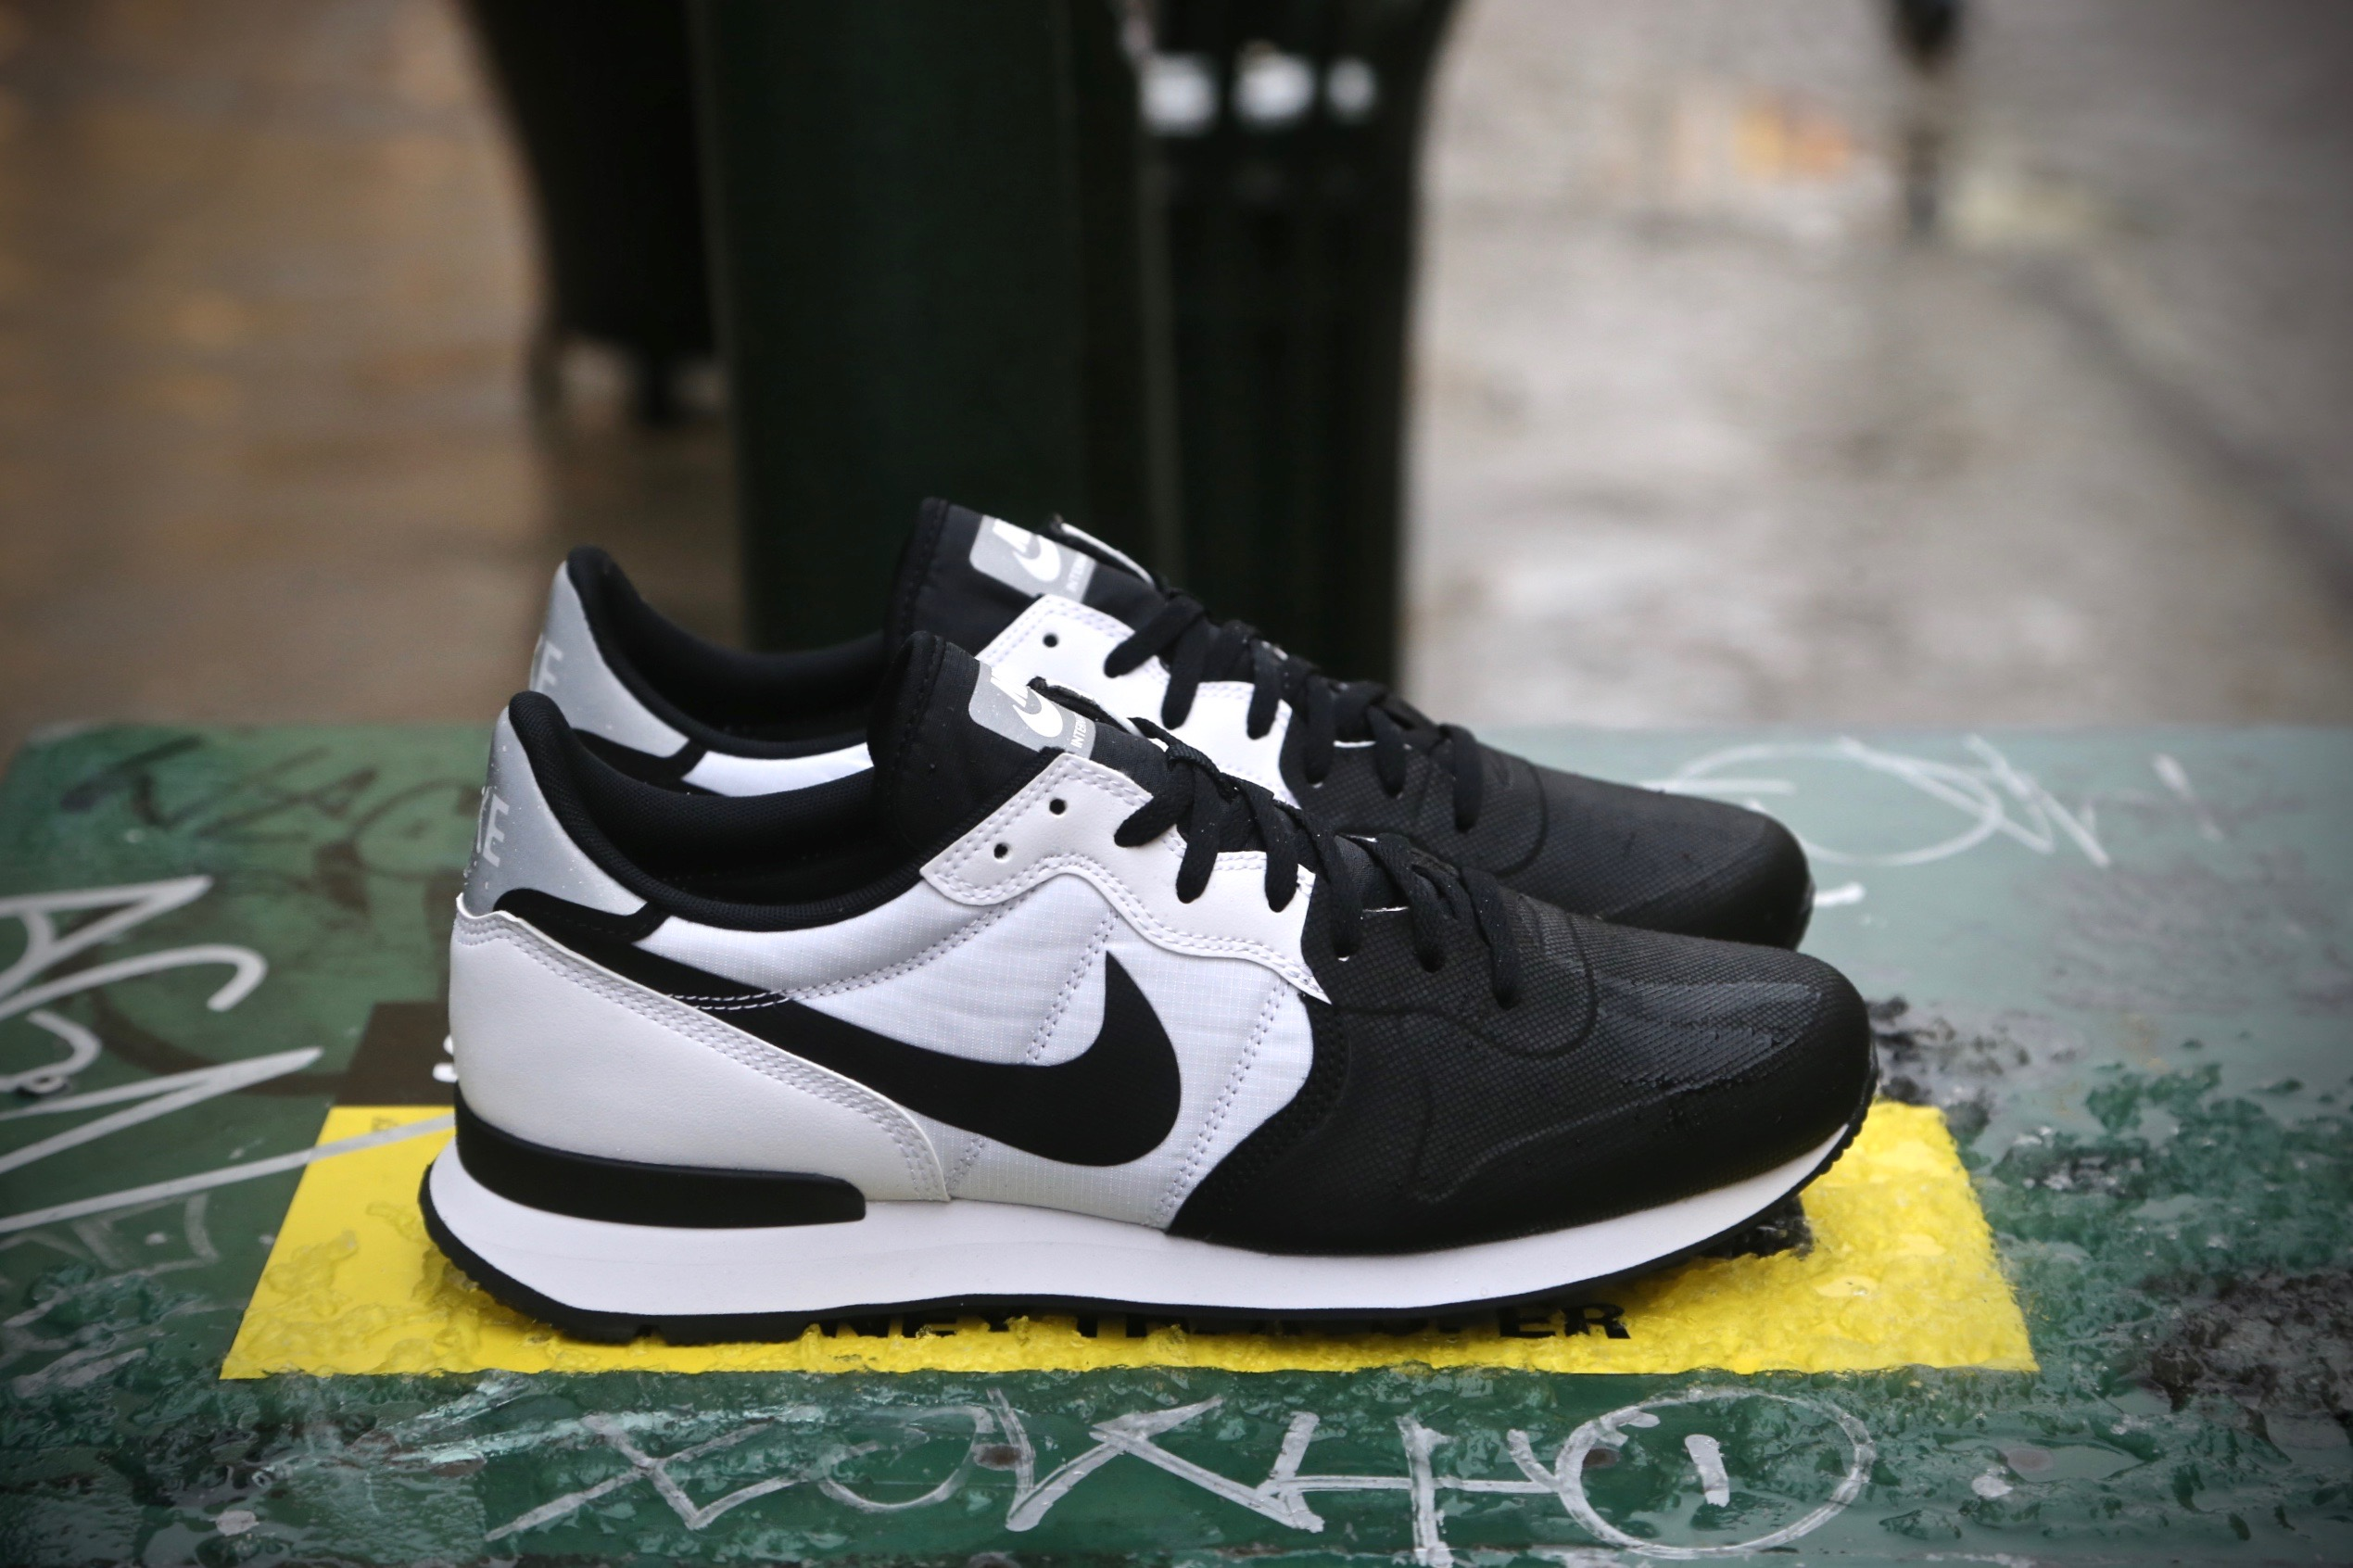 2nike internationalist se